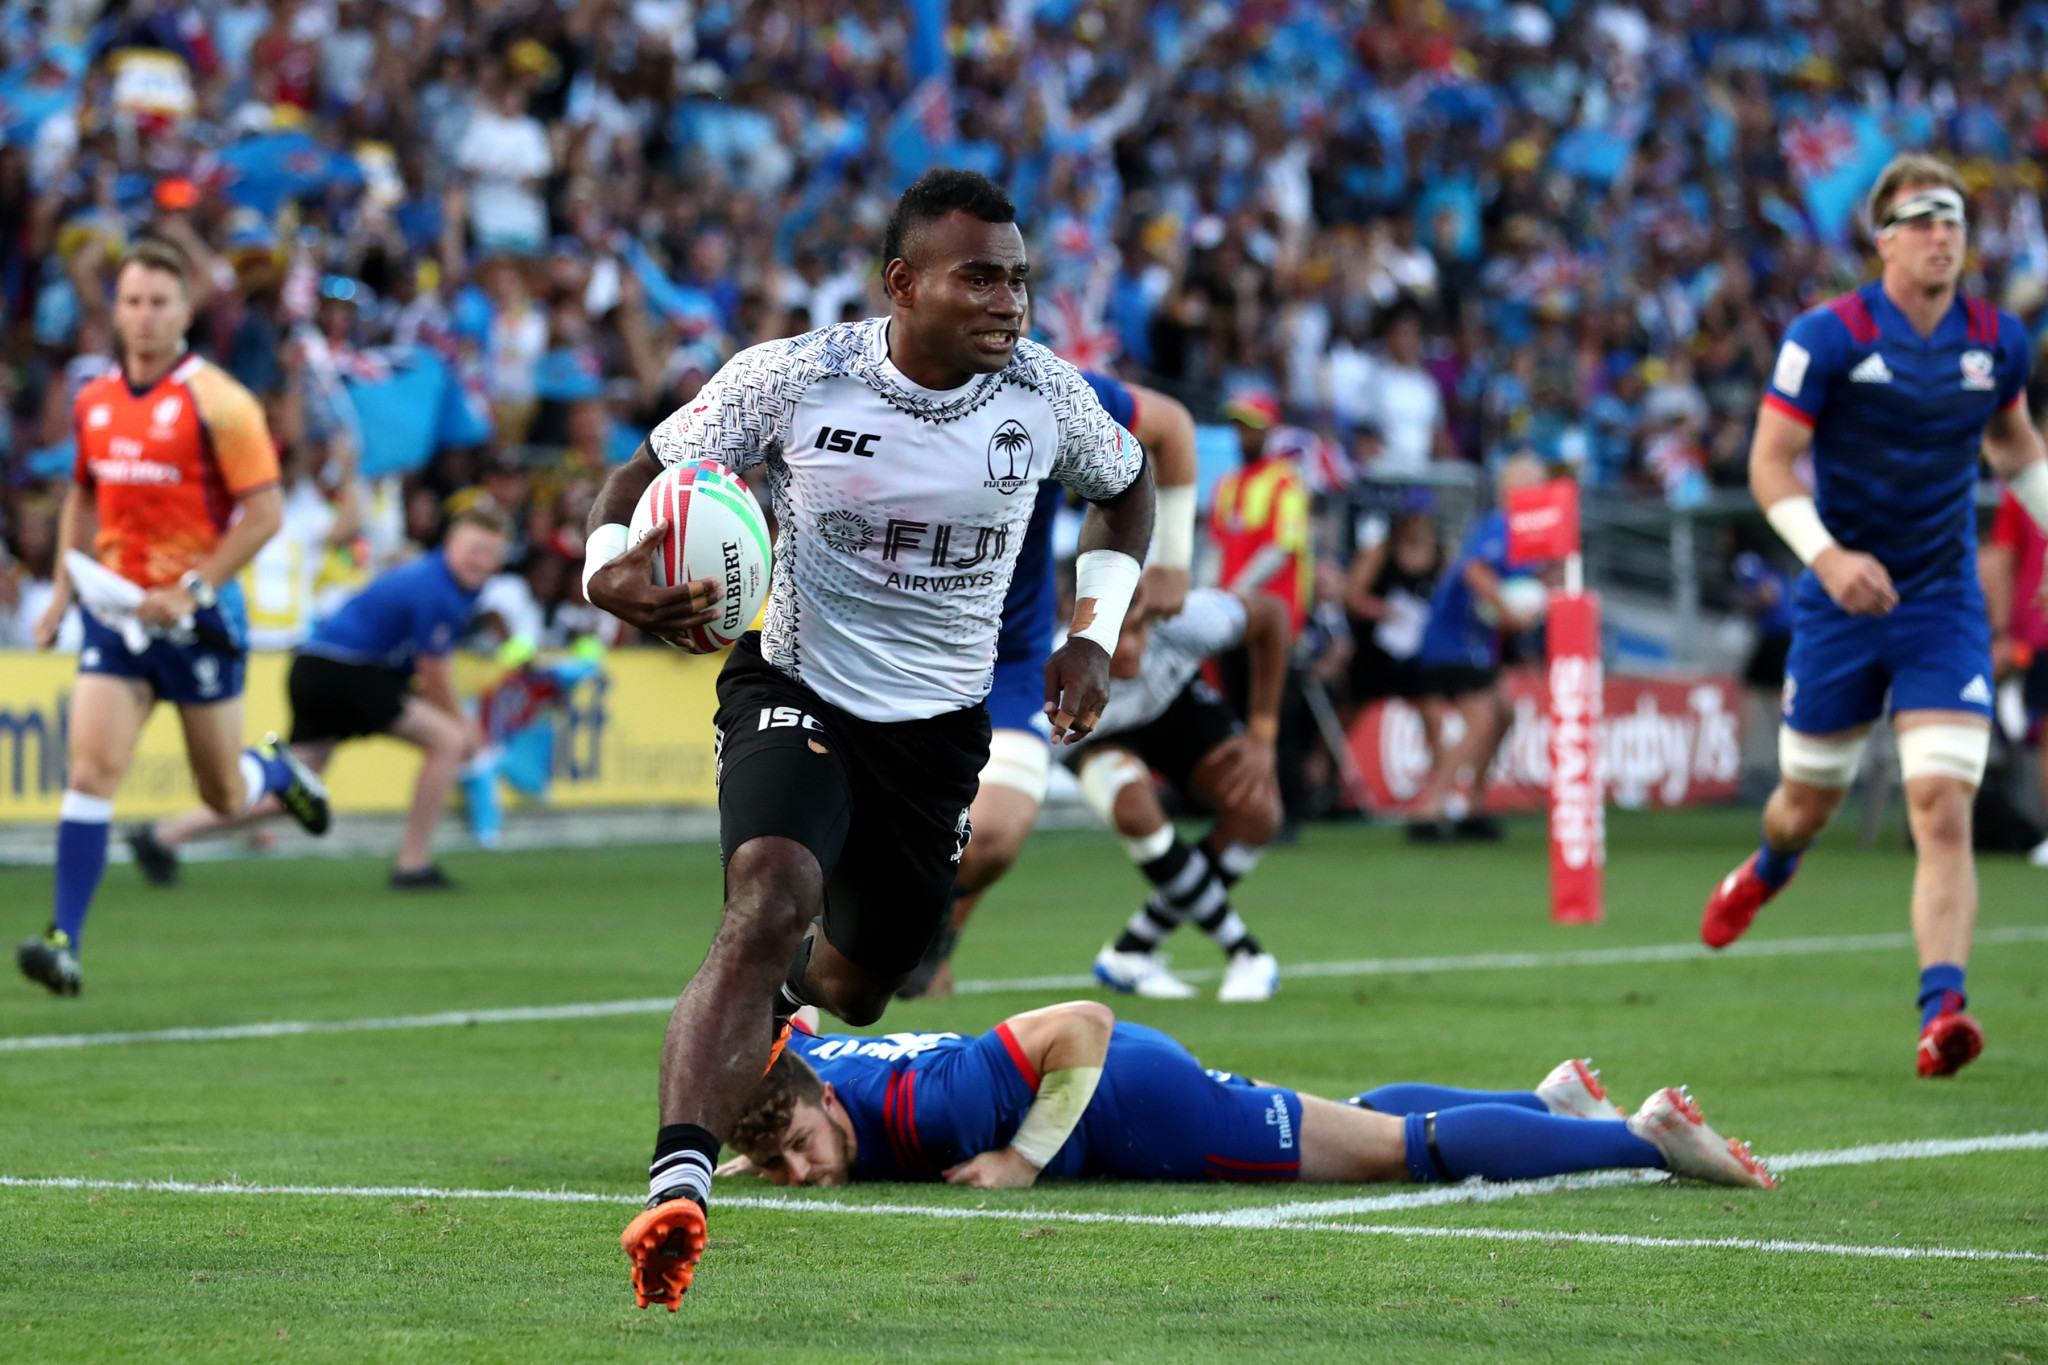 Fiji rugby sevens players to be Tokyo 2020 flagbearers